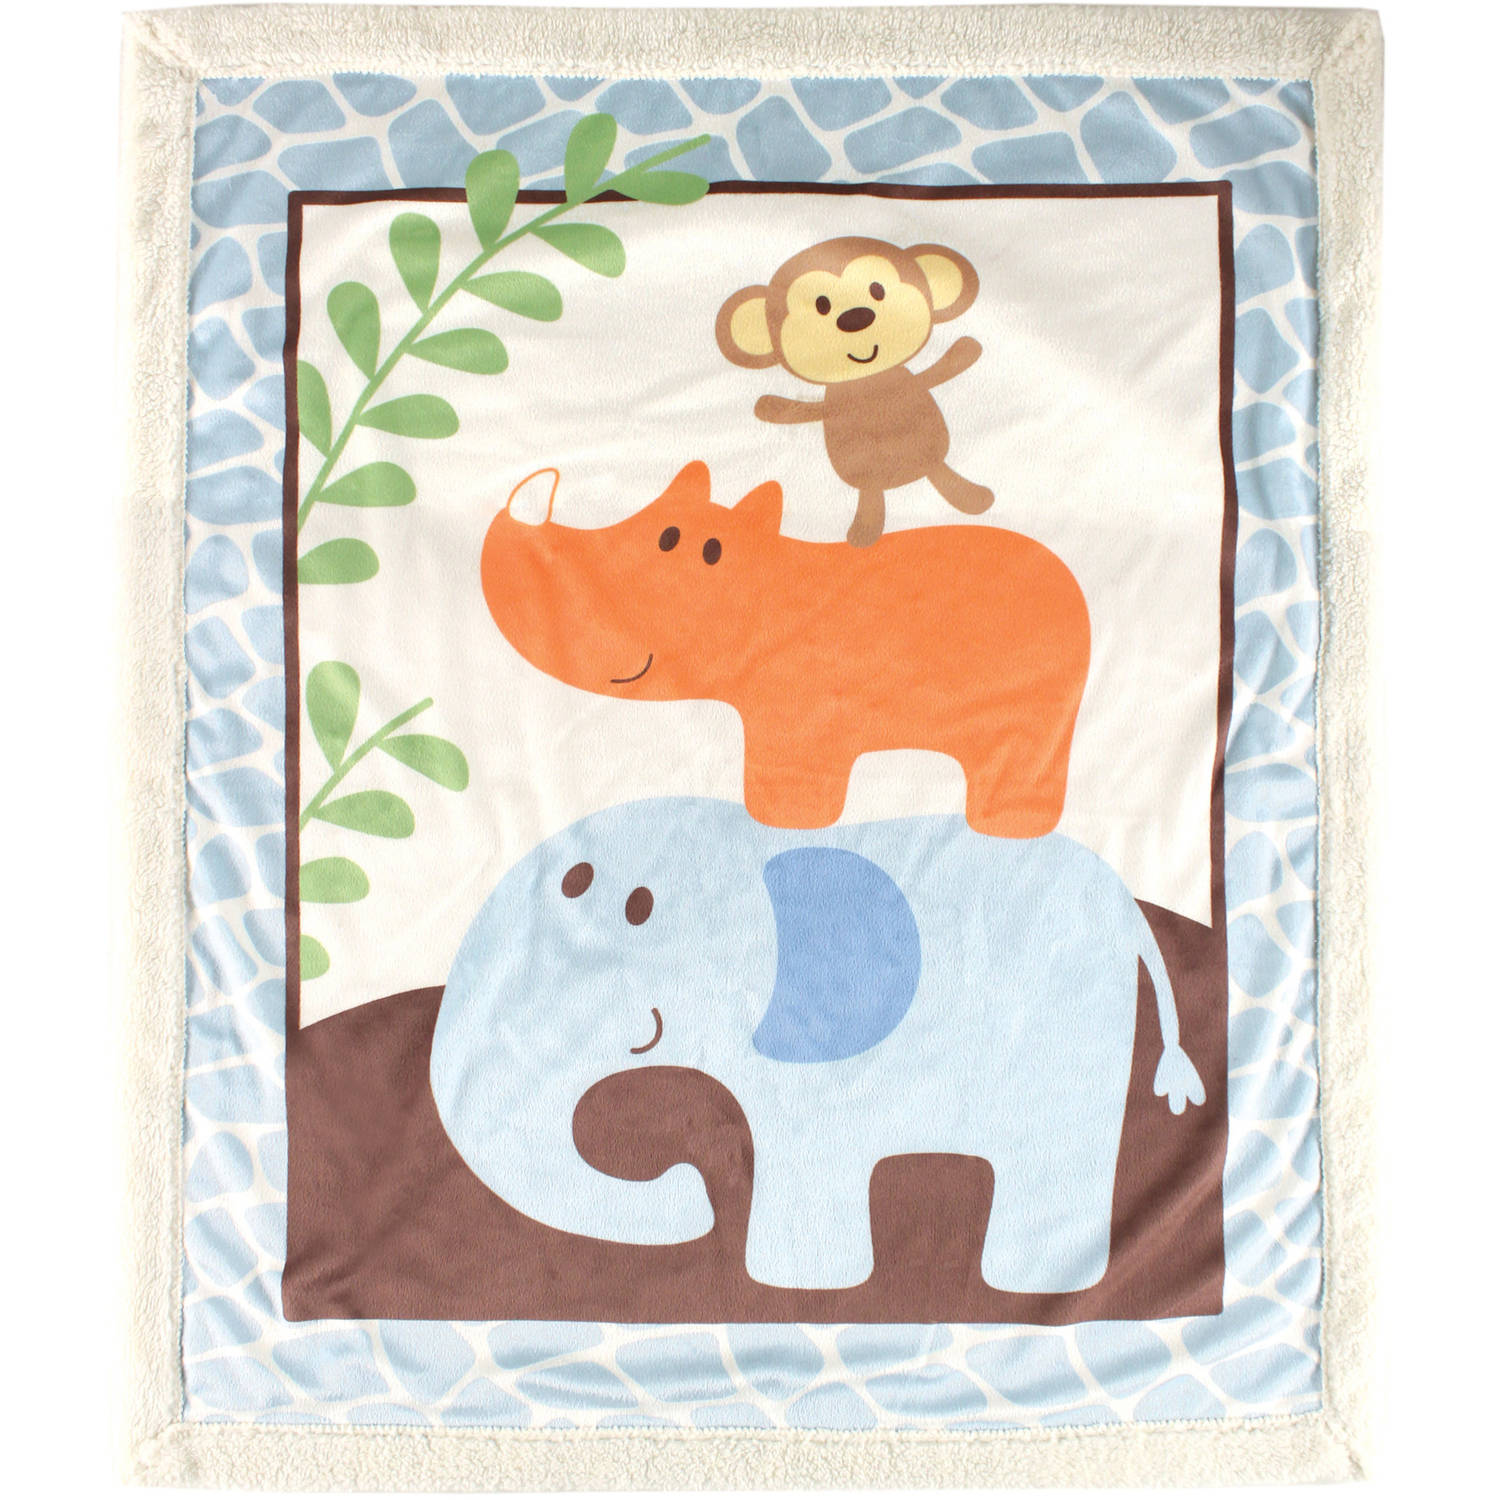 Luvable Friends Print Blanket with Sherpa Backing, Blue